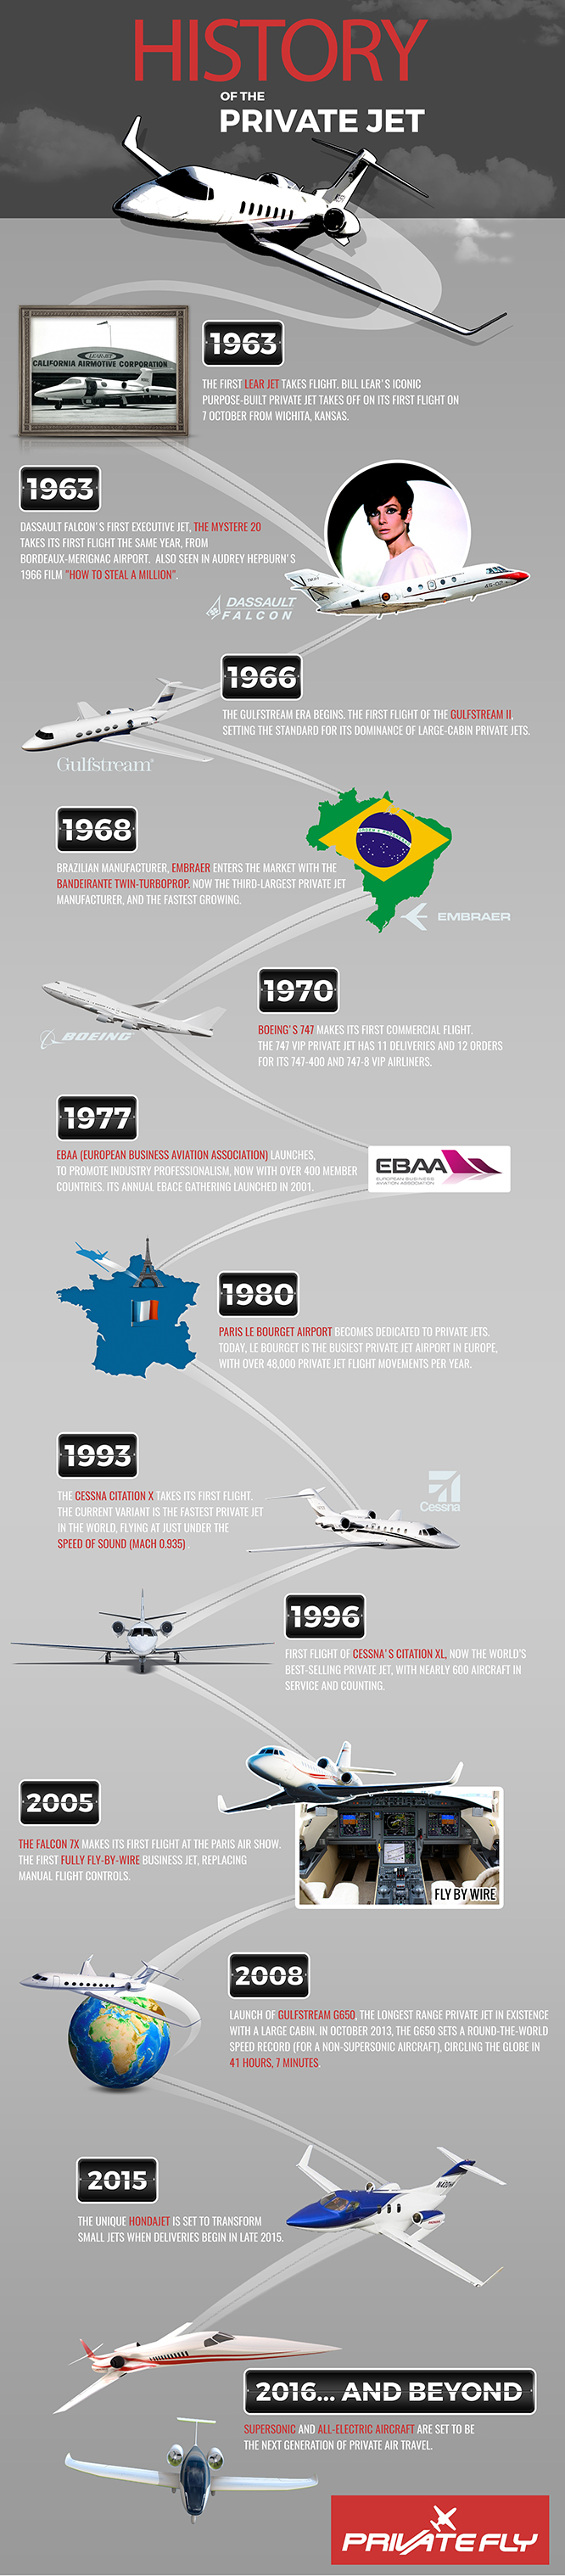 History of Private jets by Private Fly - Lifestyle Magazine